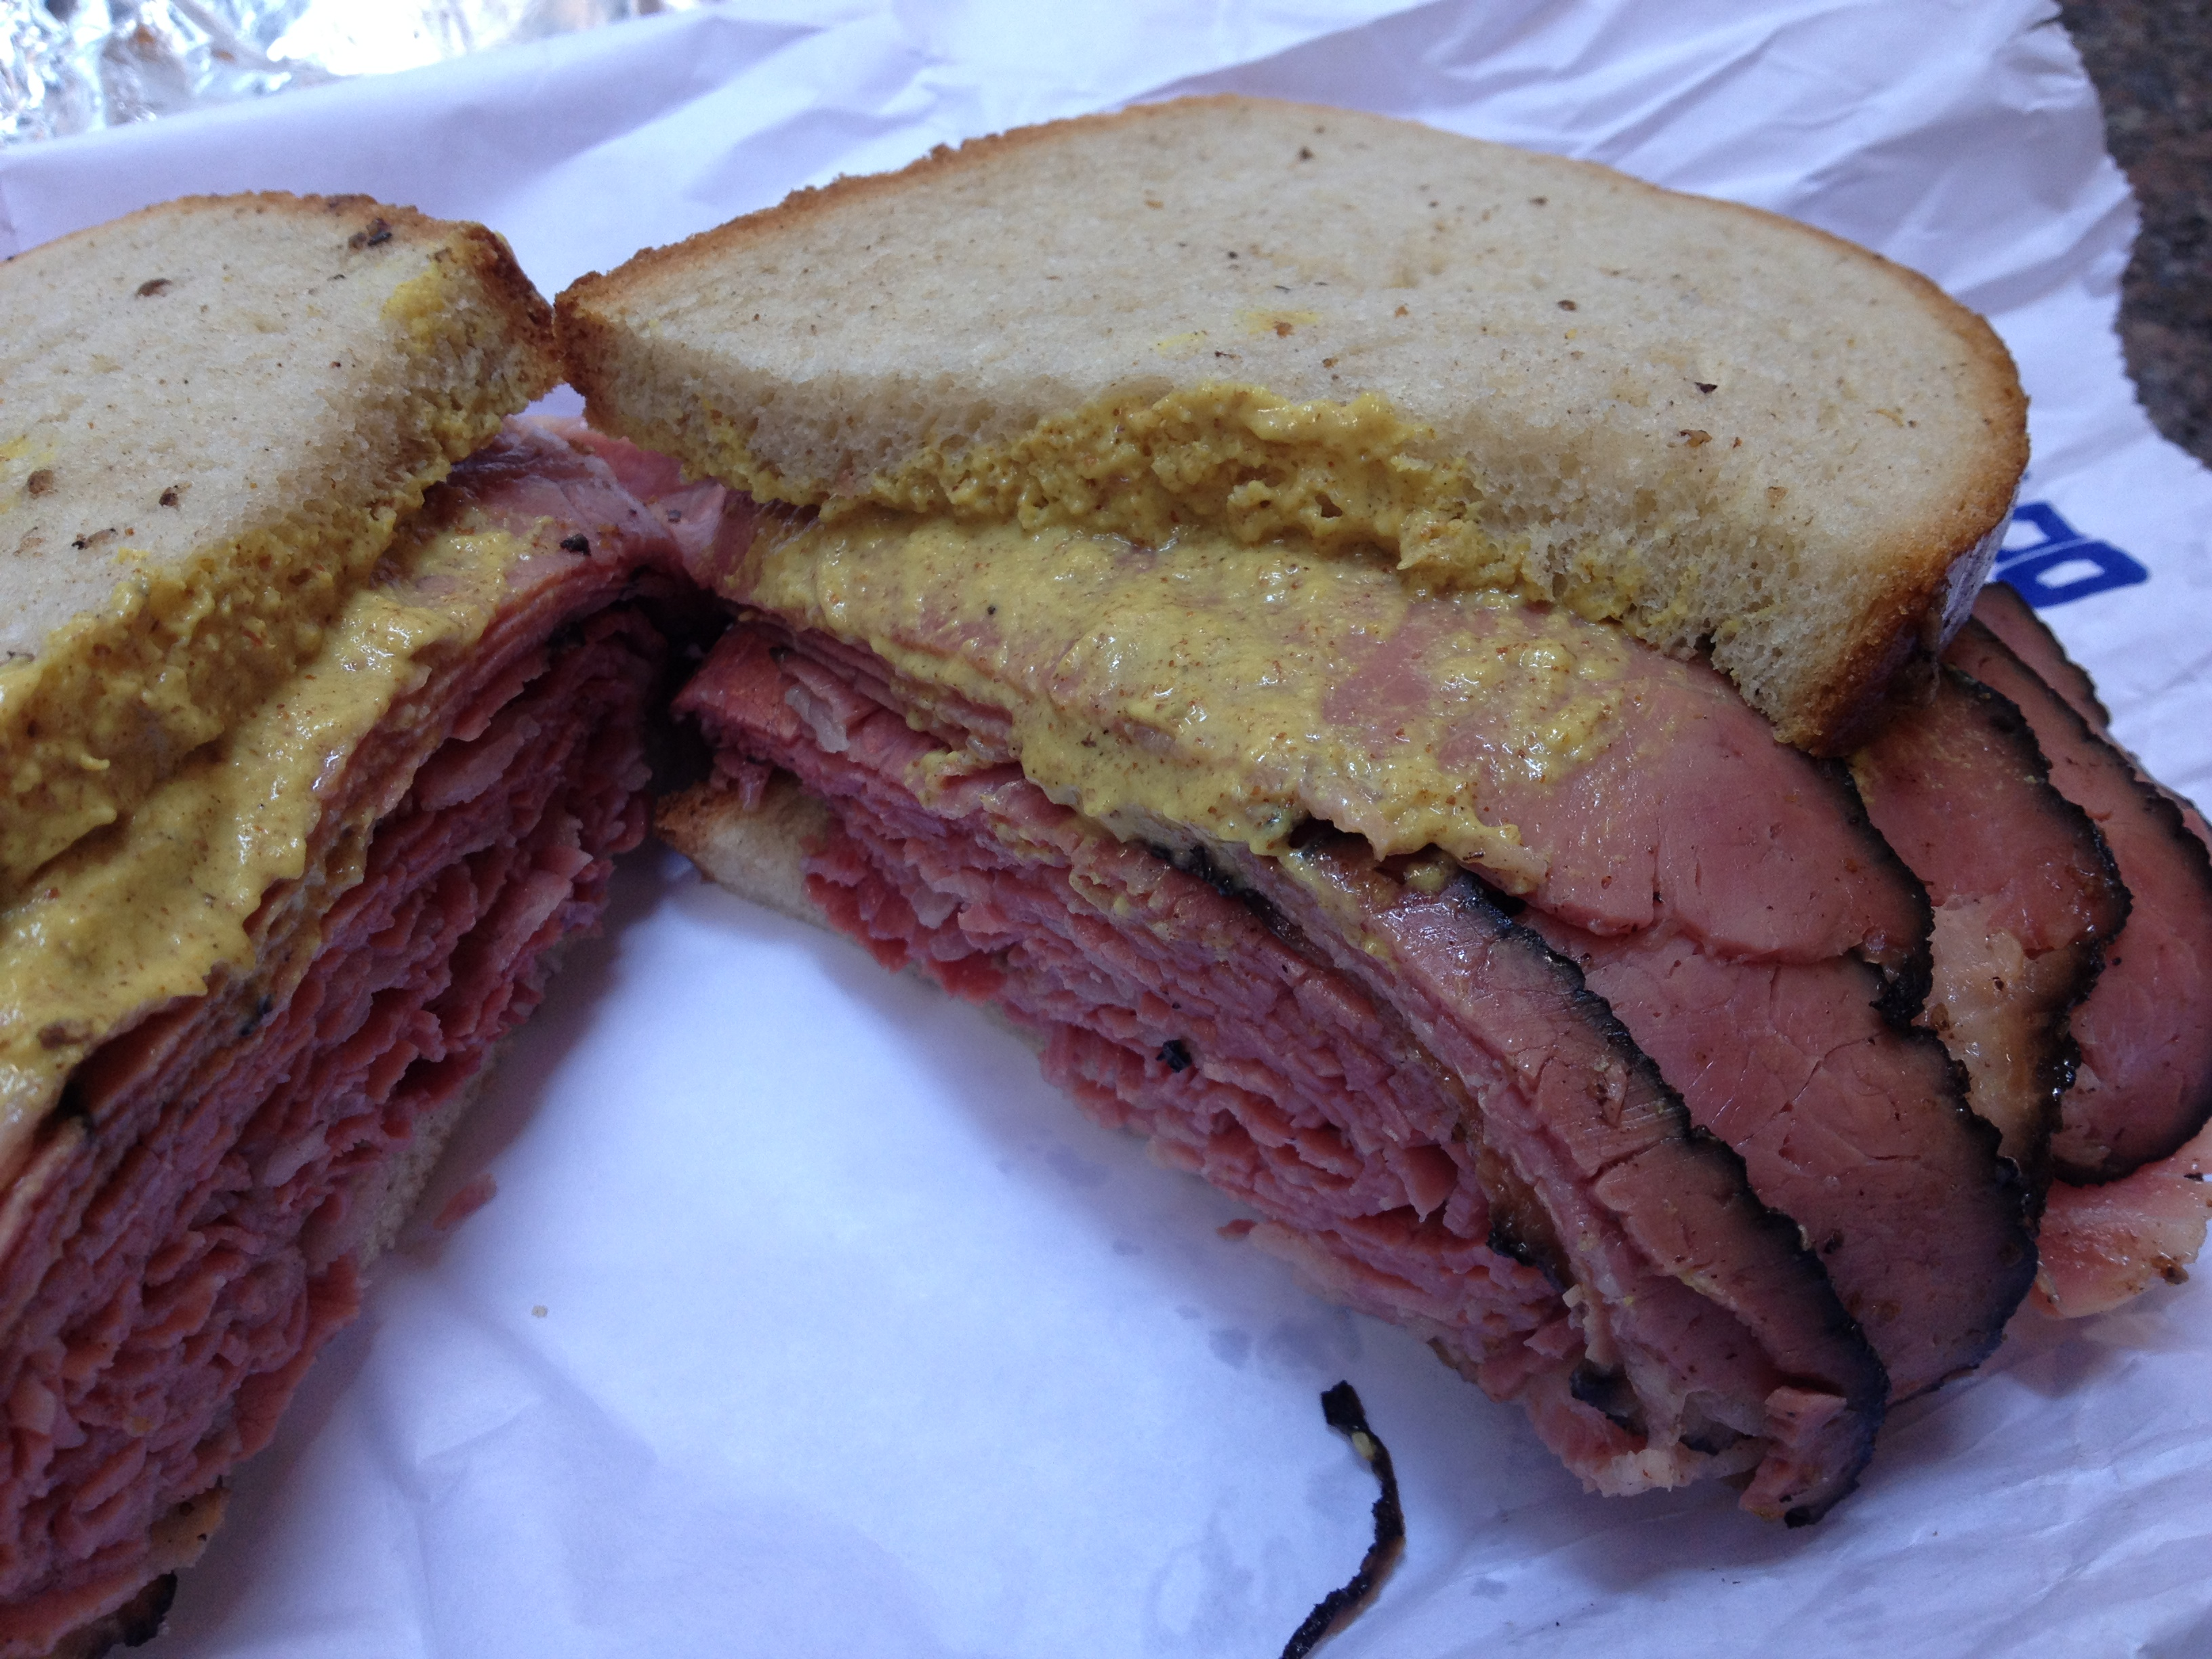 north sandwich jewish personals There are delis, and then there are delis we asked the superdiners to share their nosh spot of choice for authentic deli food in san diego county it was almost unanimous.